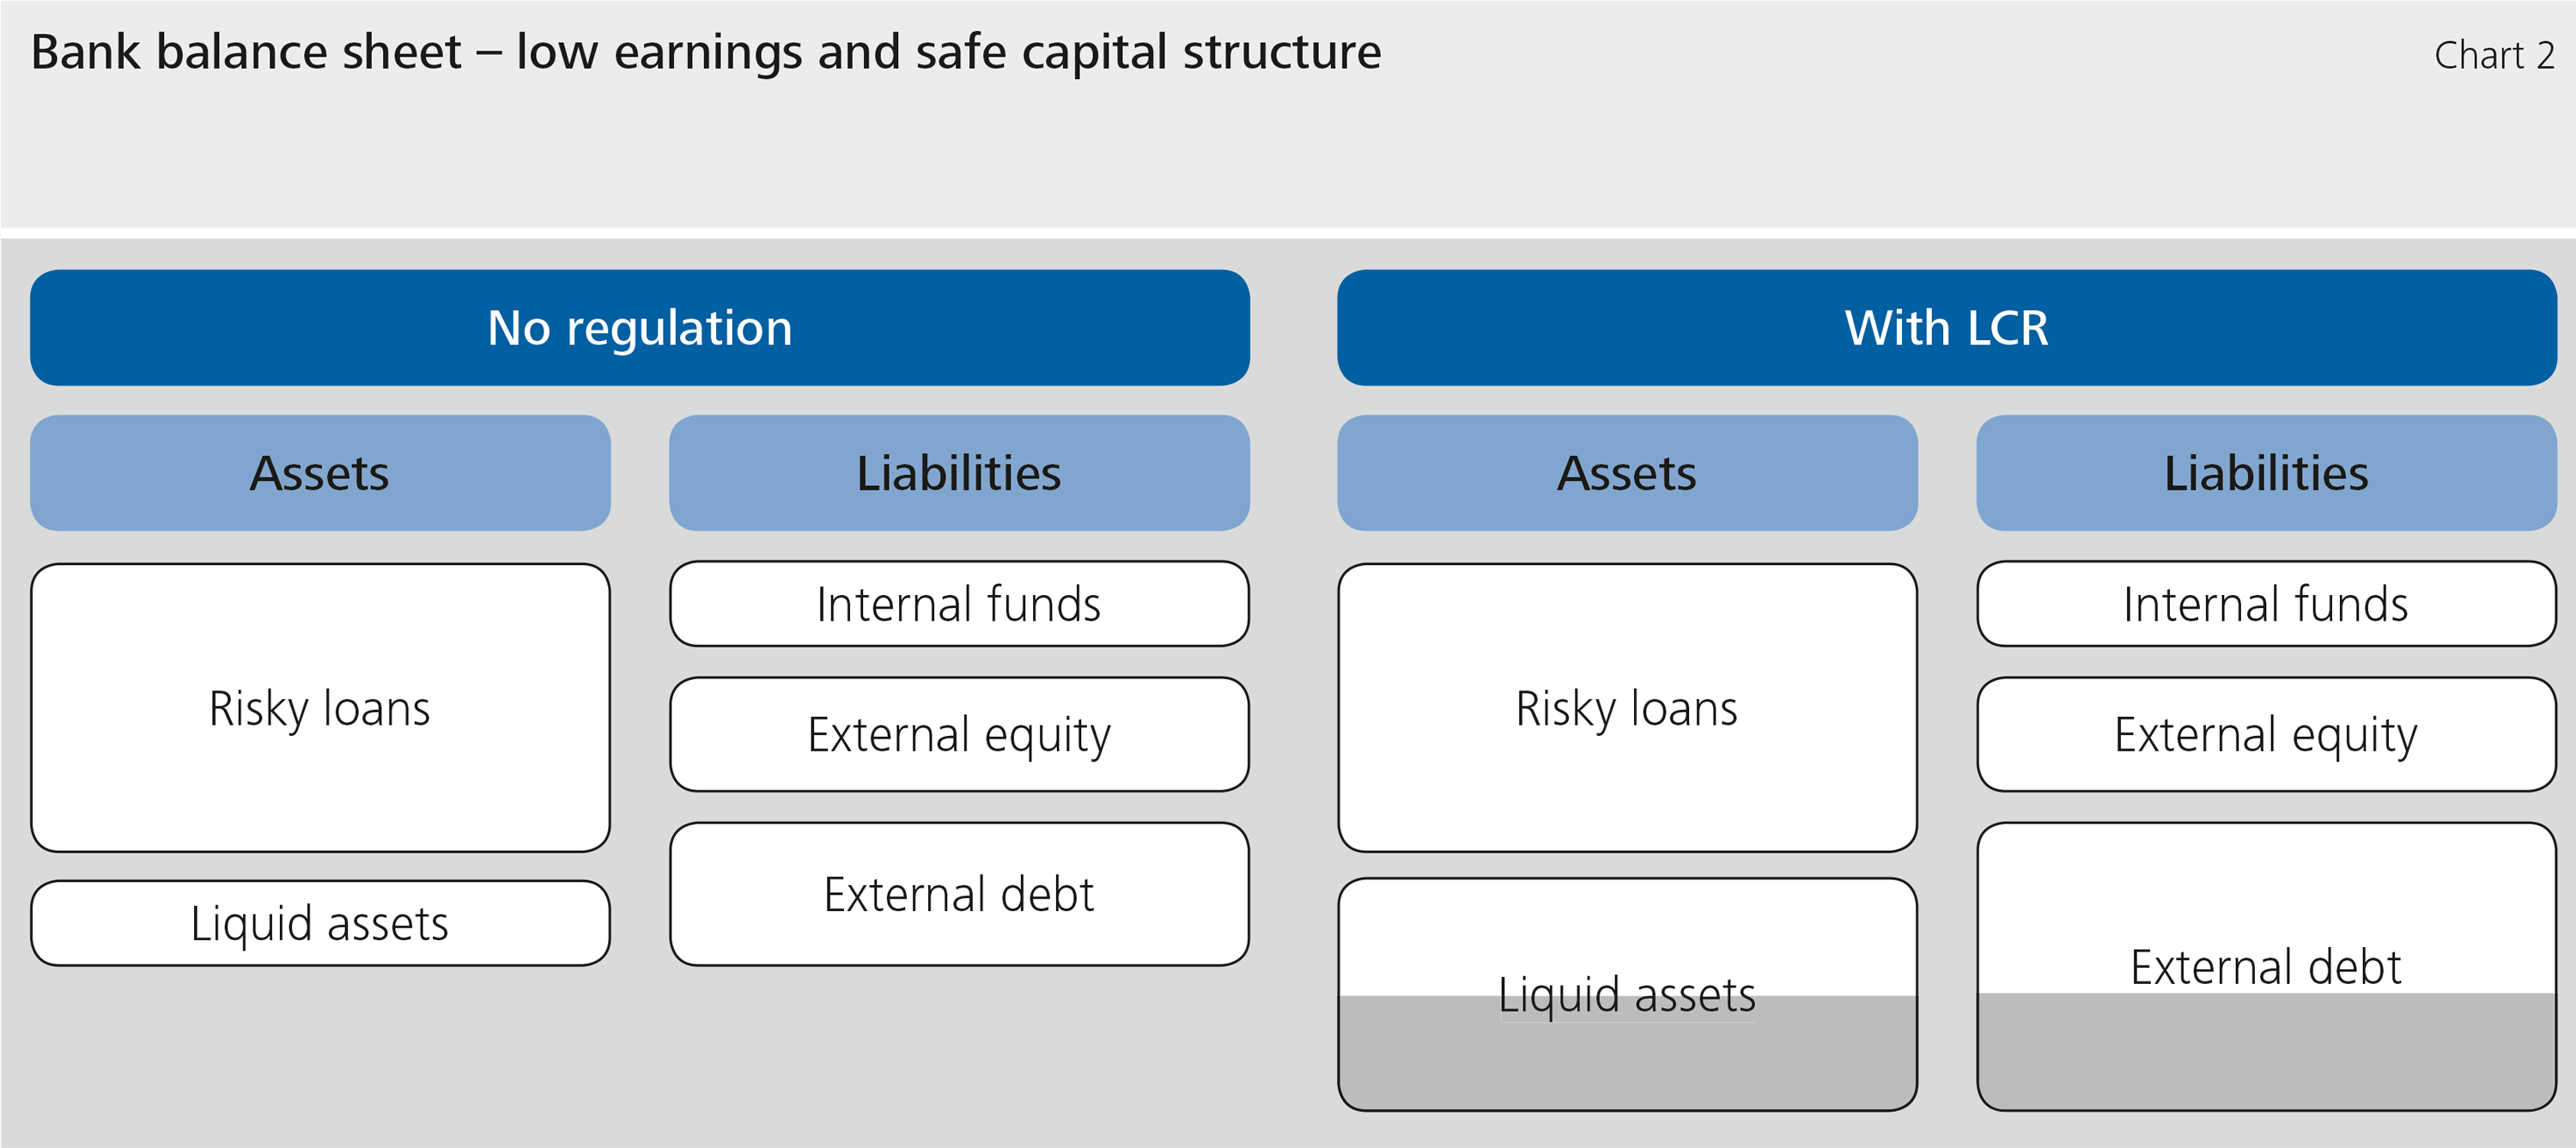 Chart 2: Bank balance sheet – low earnings and safe capital structure